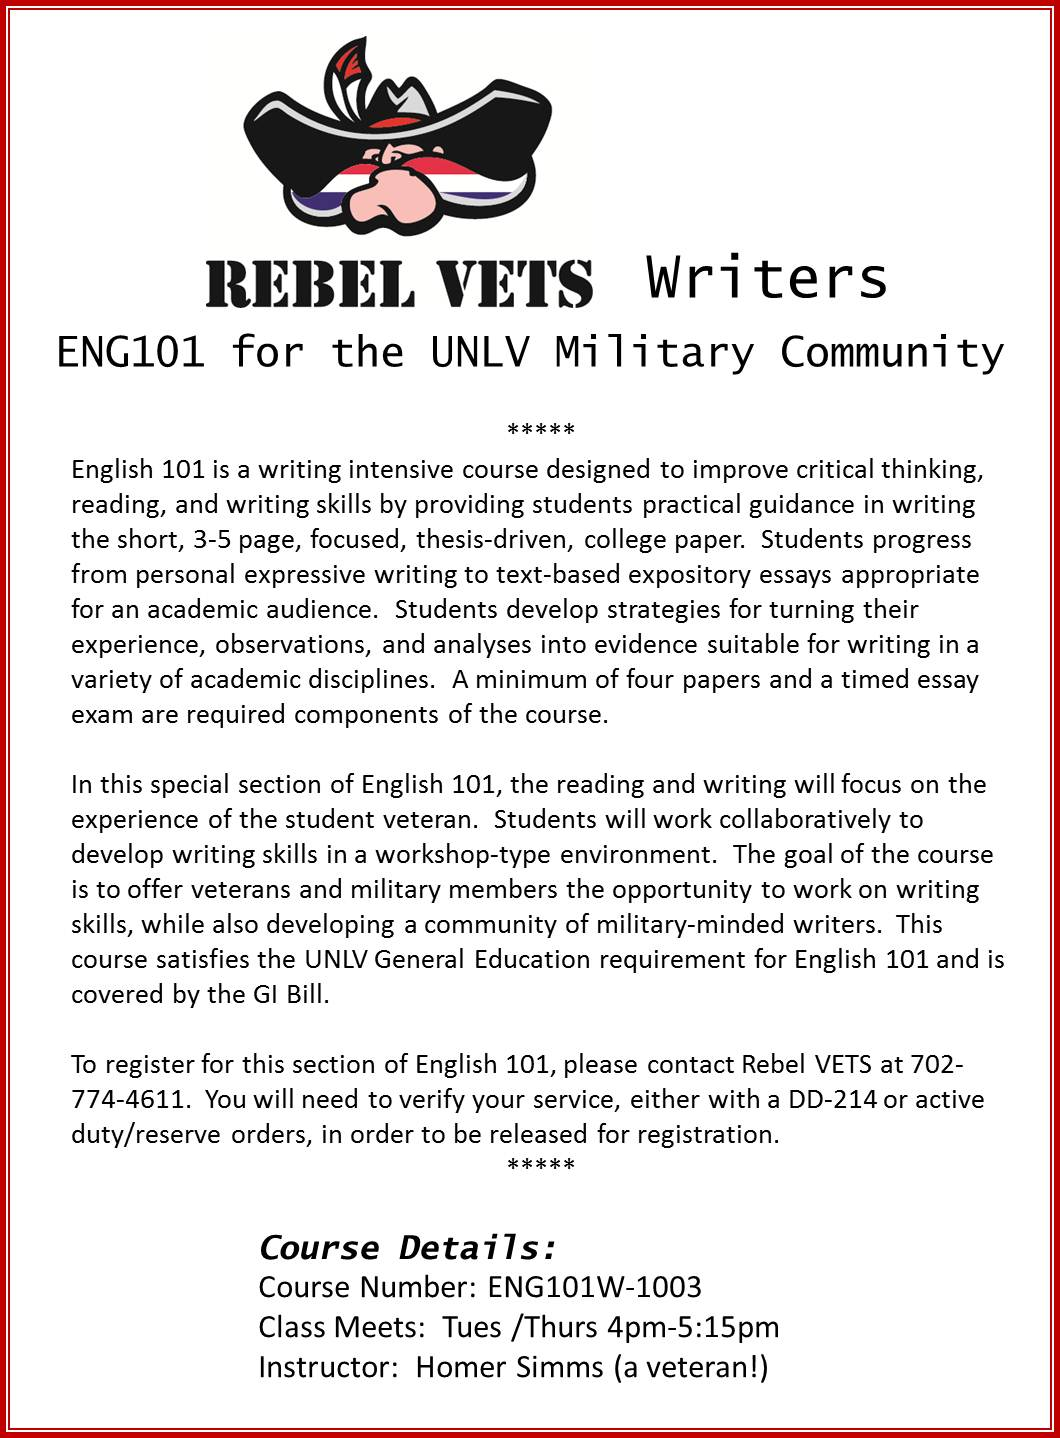 rebel vets writers fall rebel vets